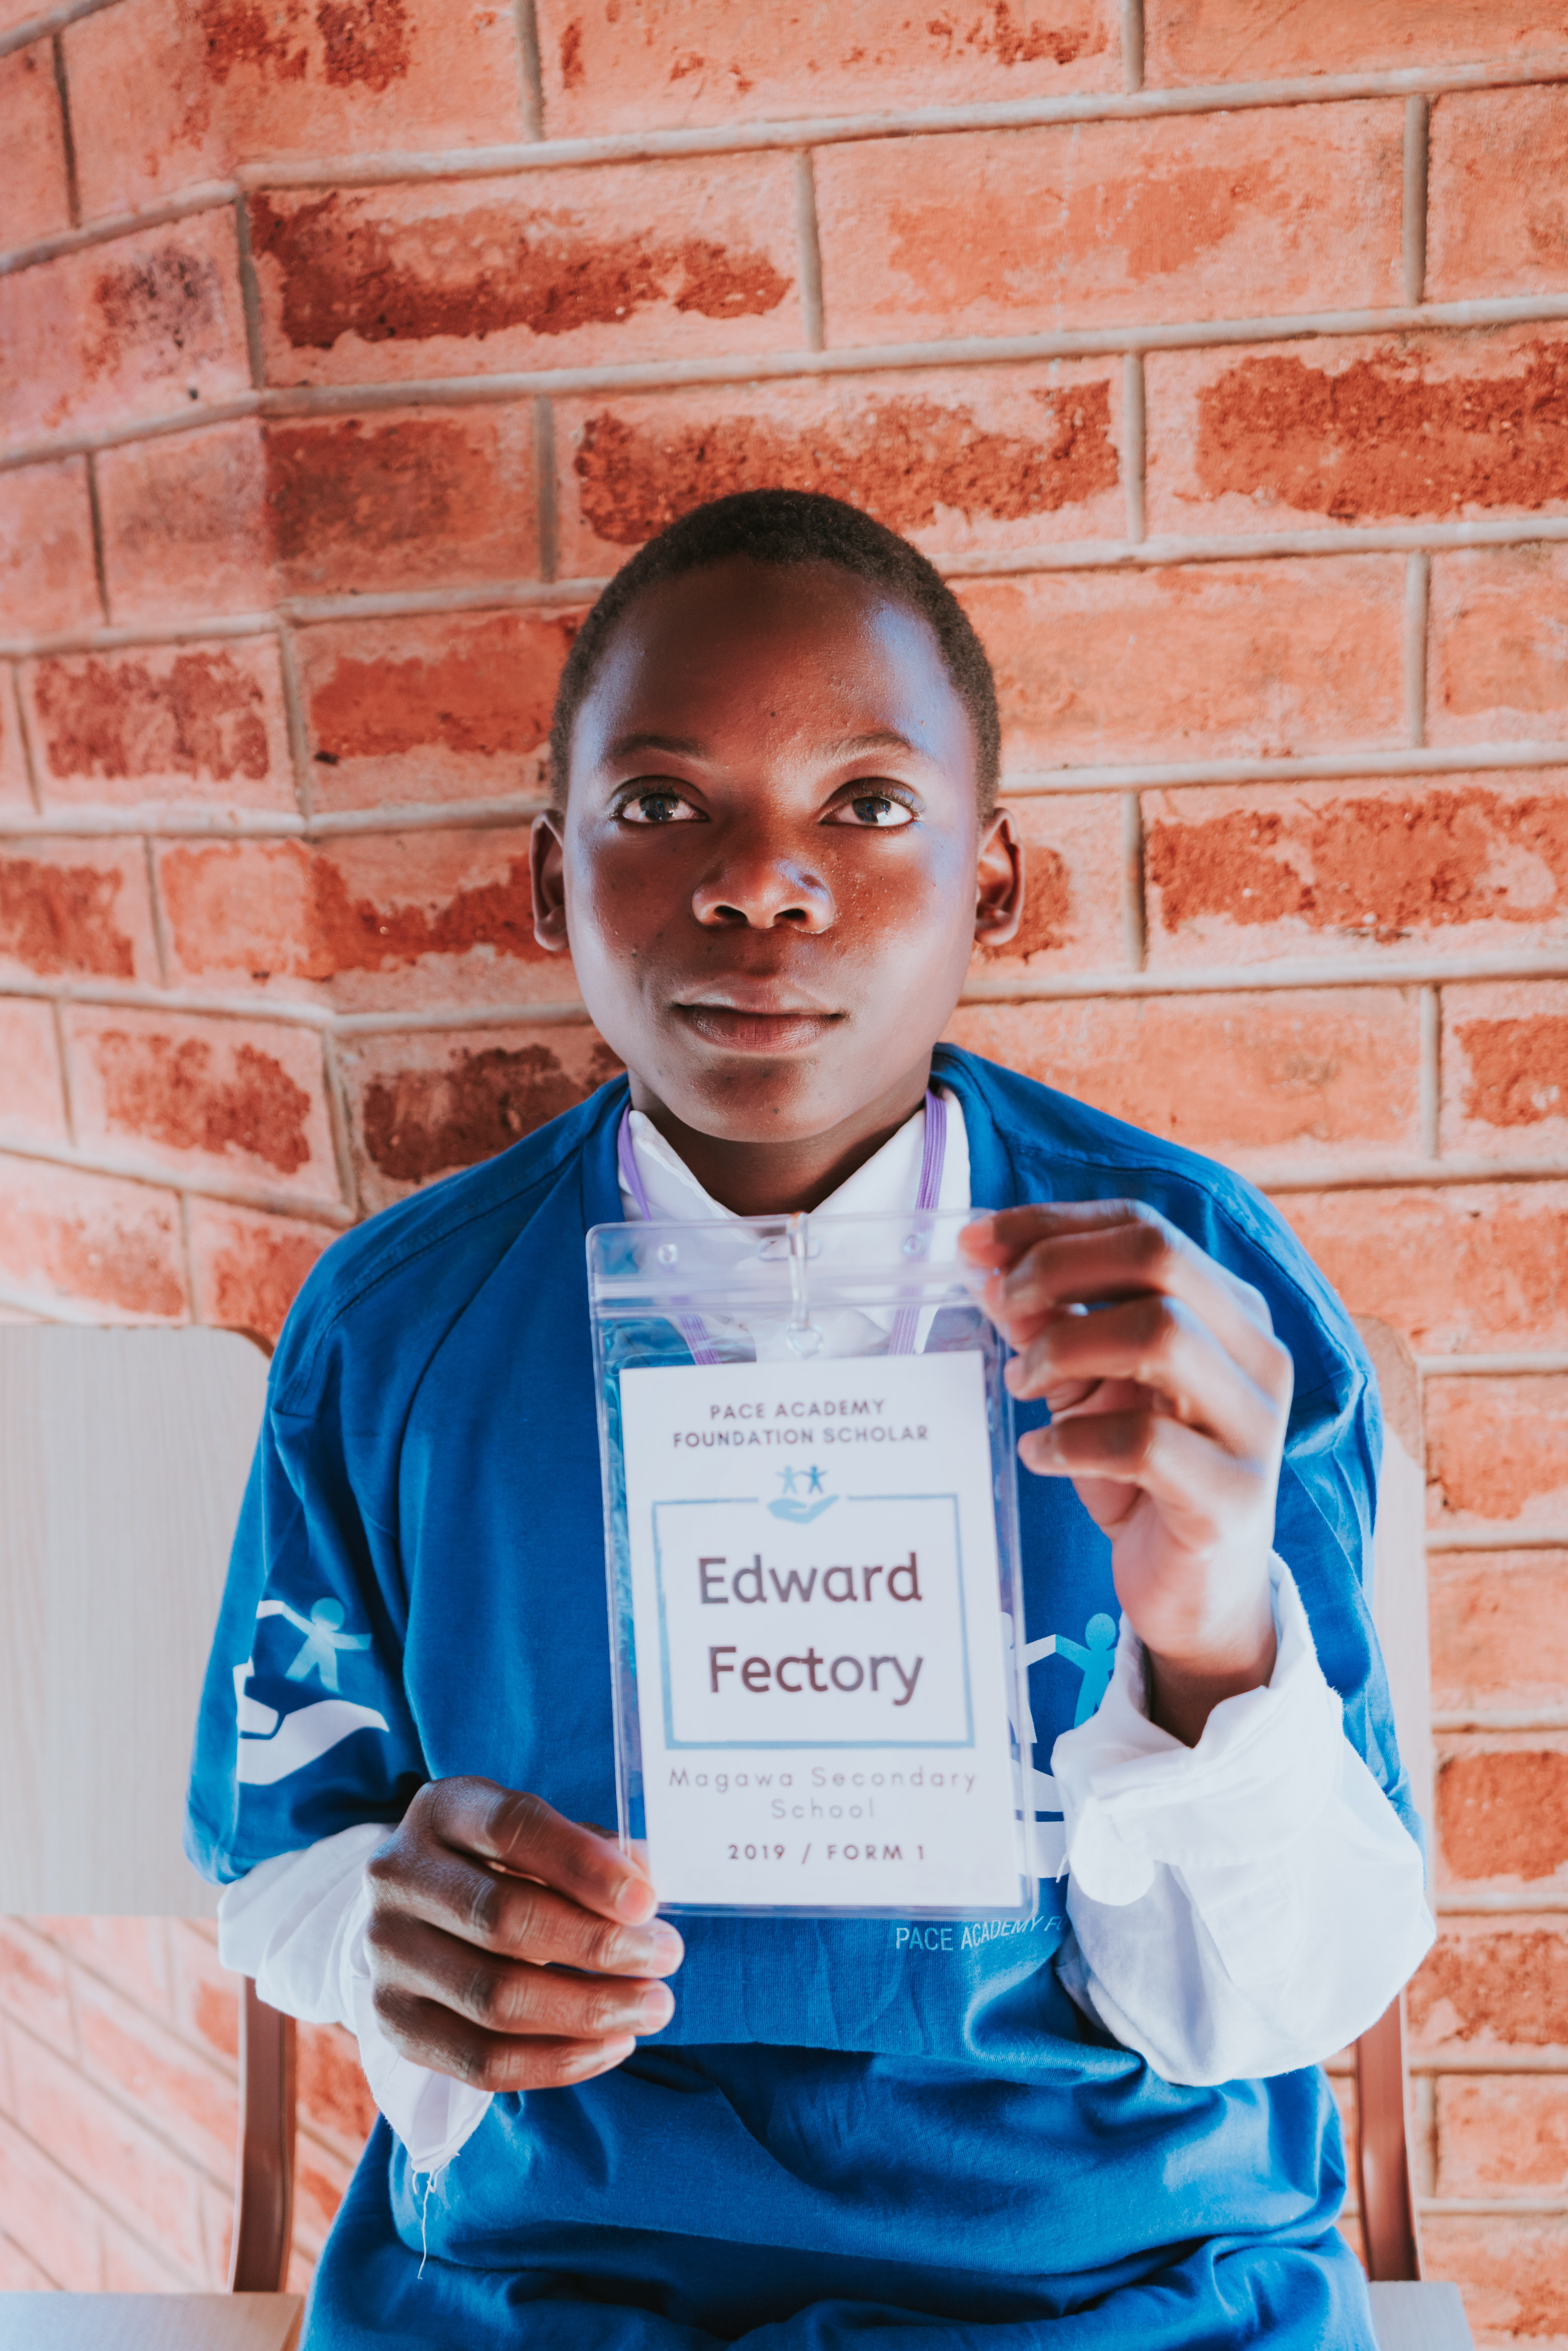 Edward Fectory (Magawa Secondary School)